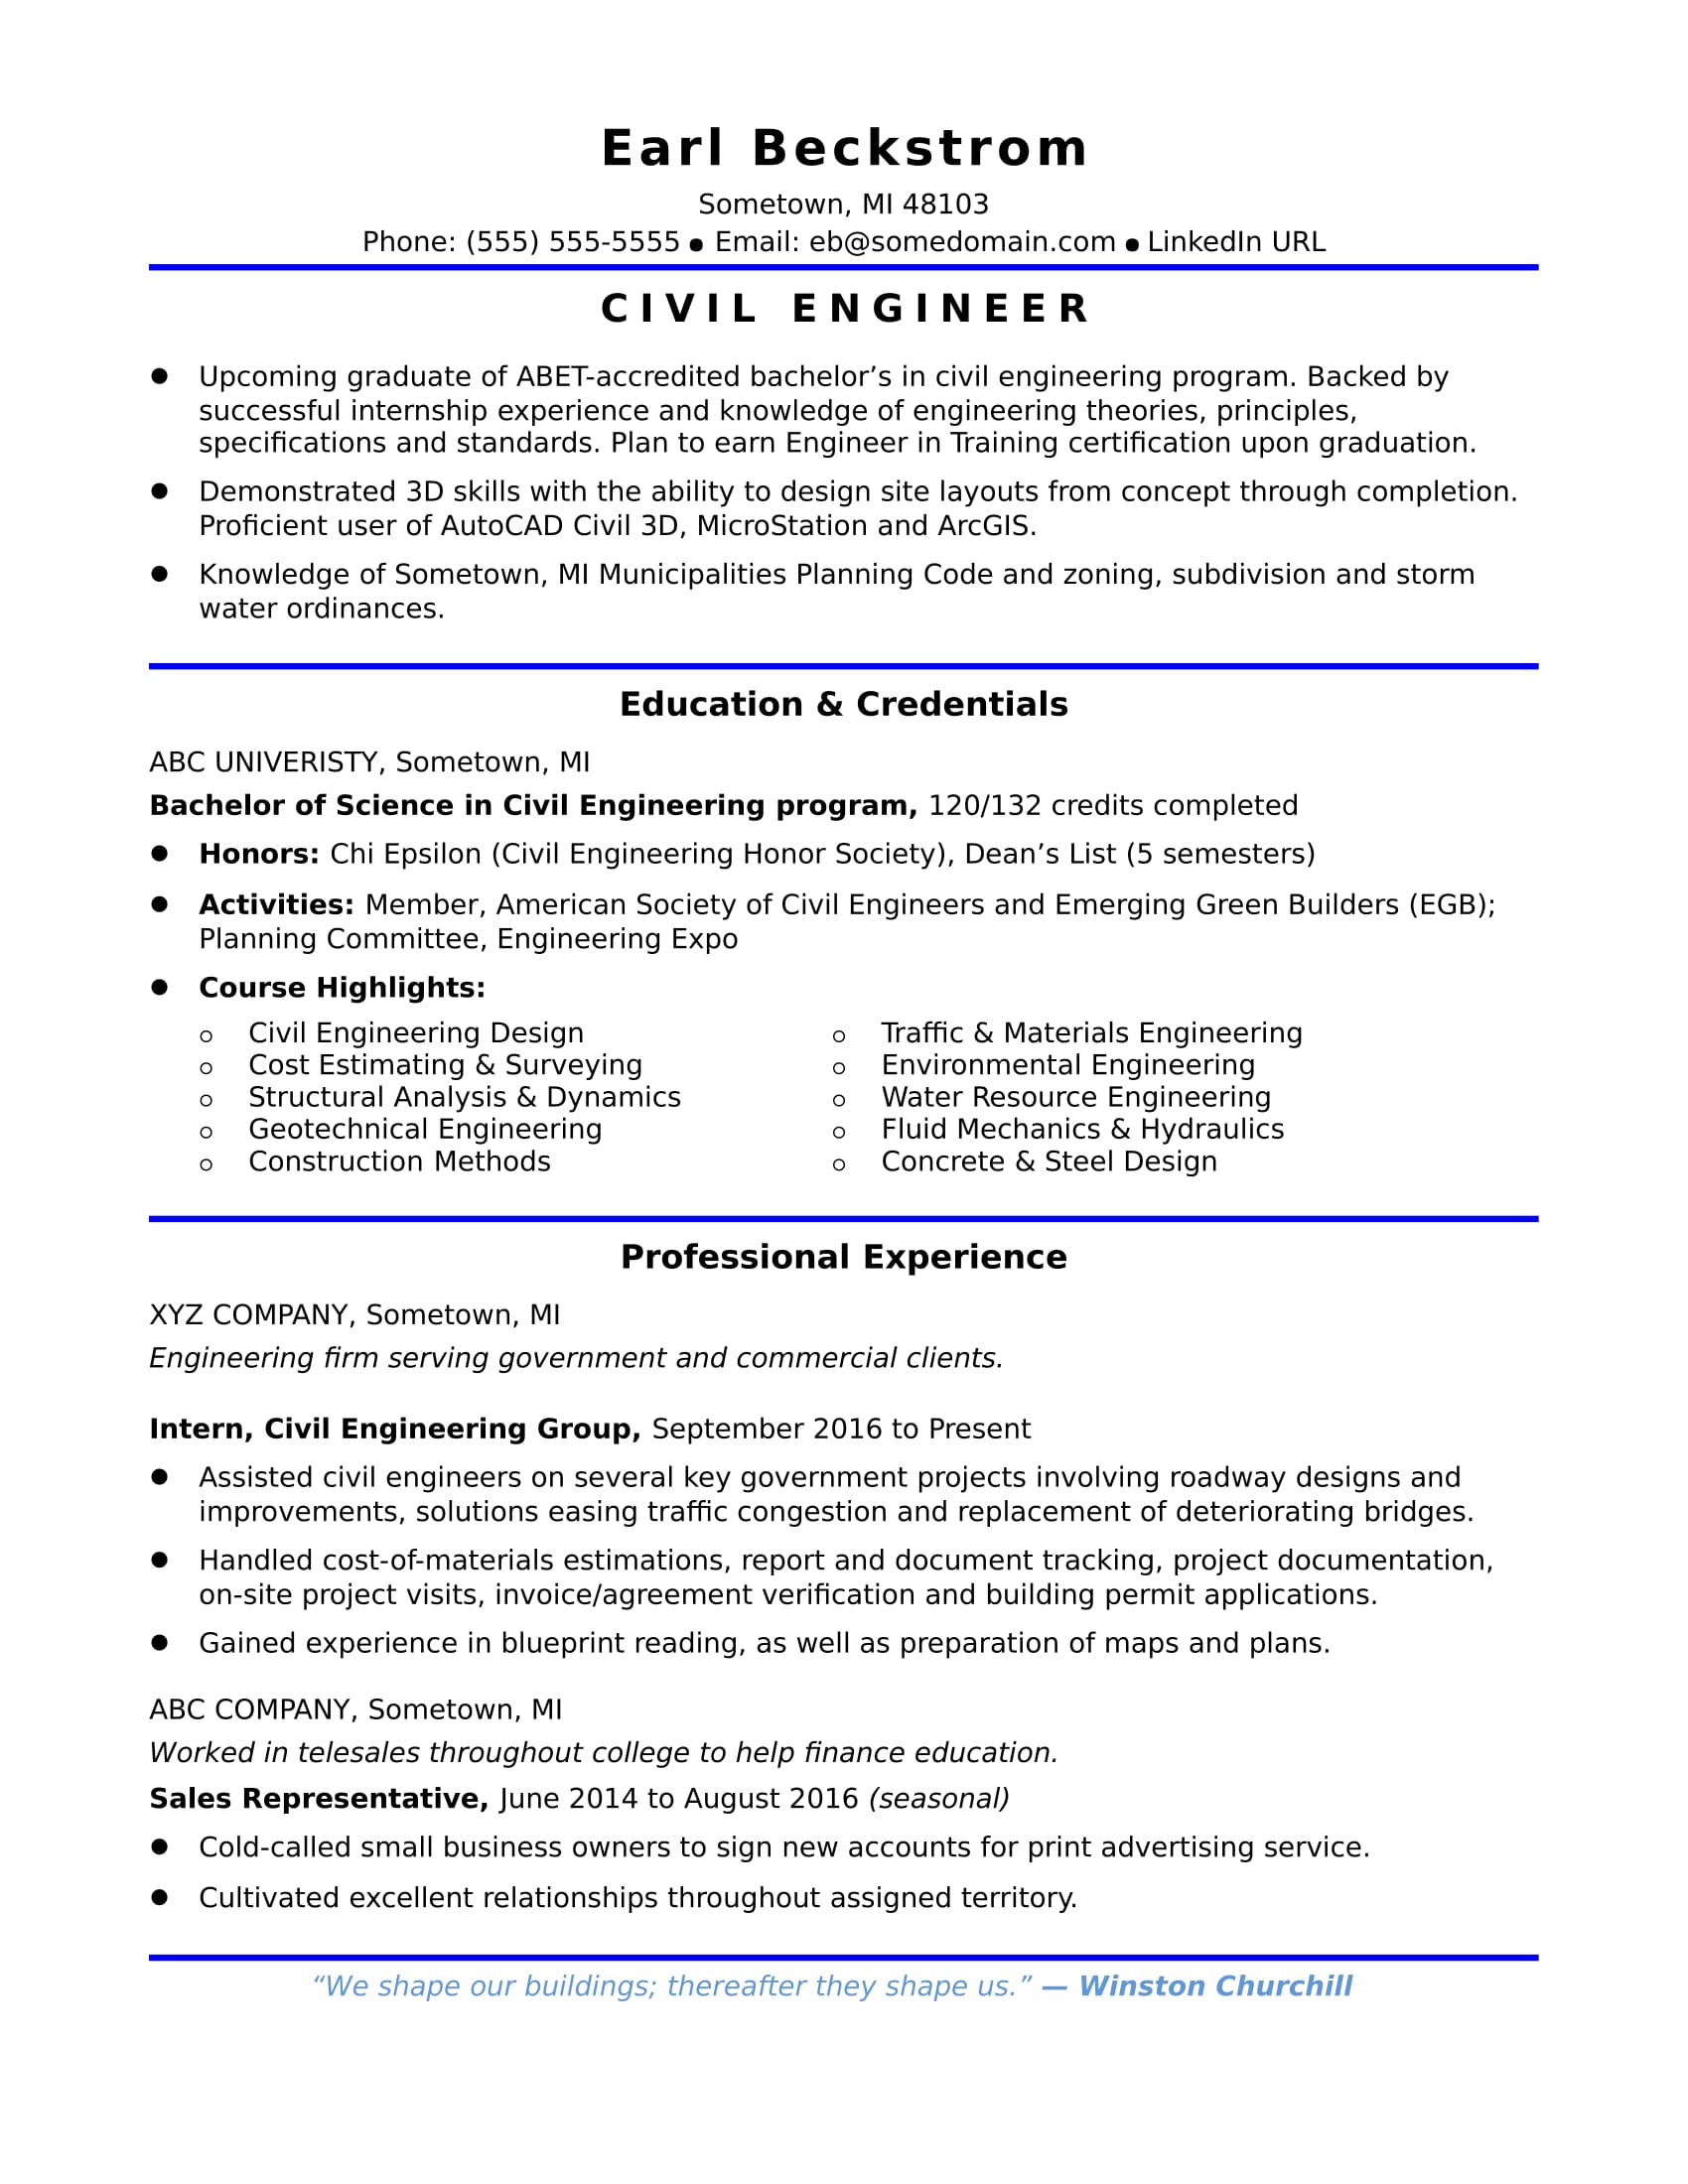 sample resume for an entry level civil engineer monster engineering examples blogger Resume Civil Engineering Resume Examples